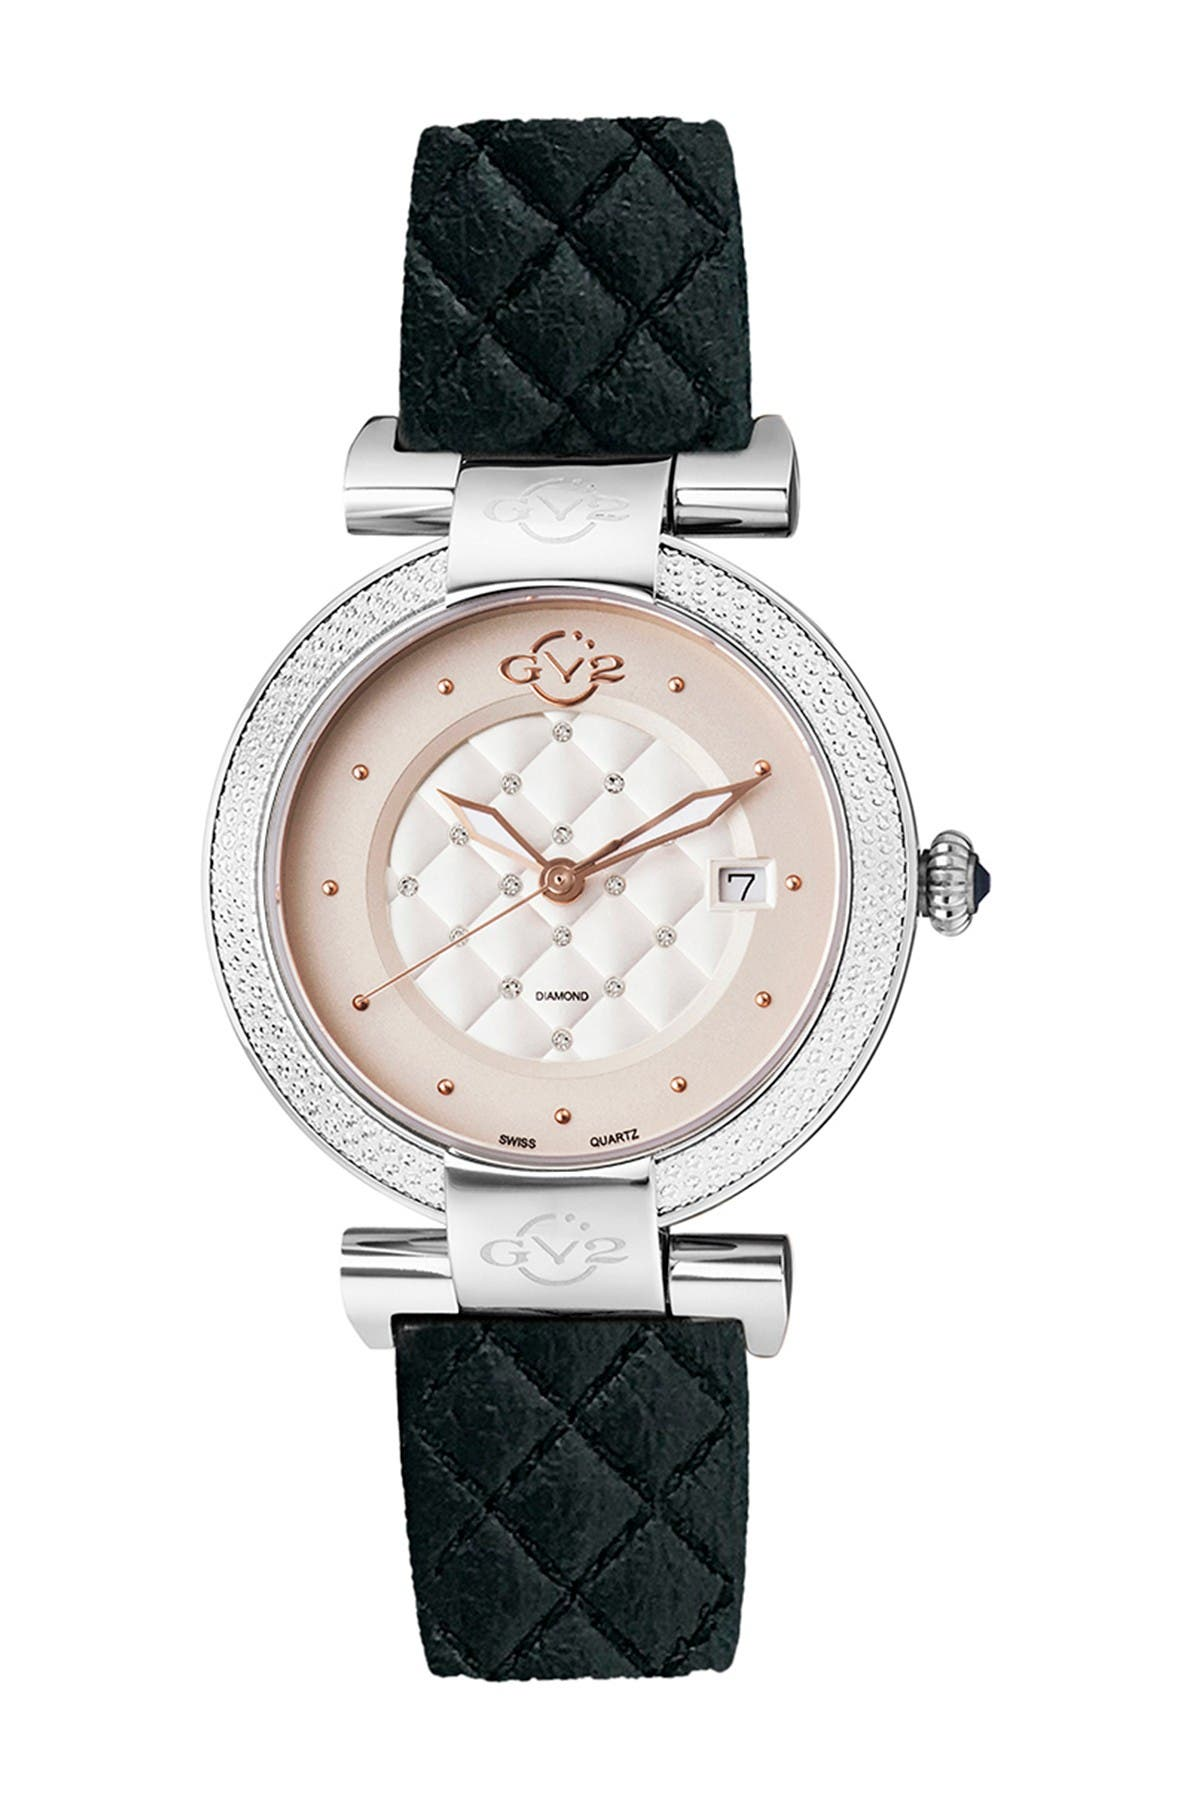 Image of Gevril Women's GV2 Berletta Diamond Apple Vegan Strap Watch, 37mm - 0.0044 ctw